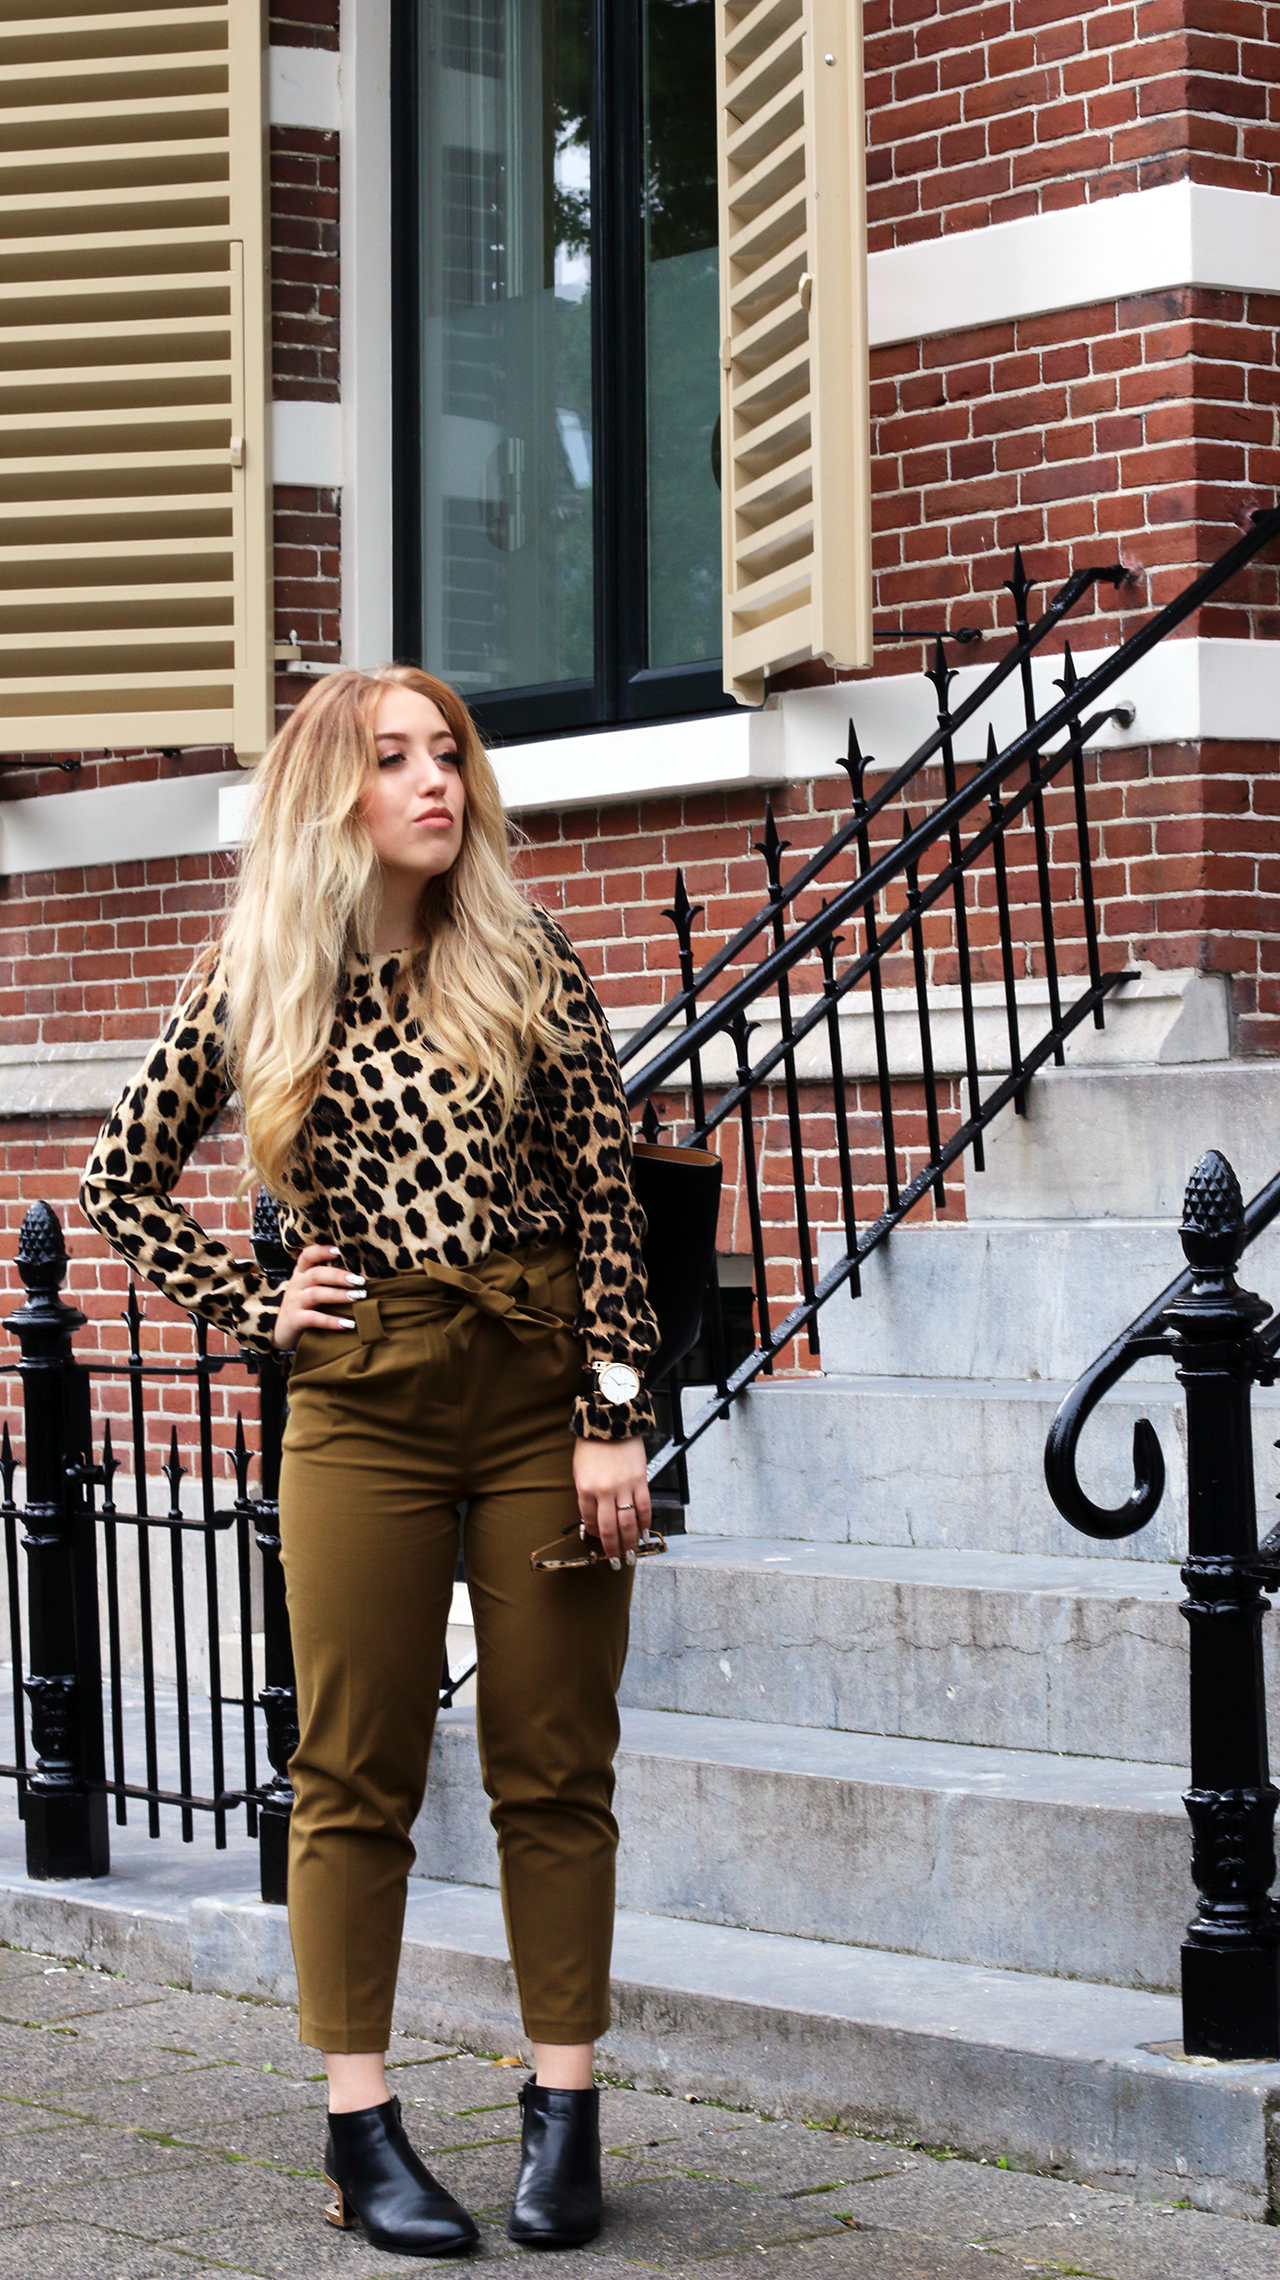 OUTFIT OF THE DAY | Khaki & Leopard